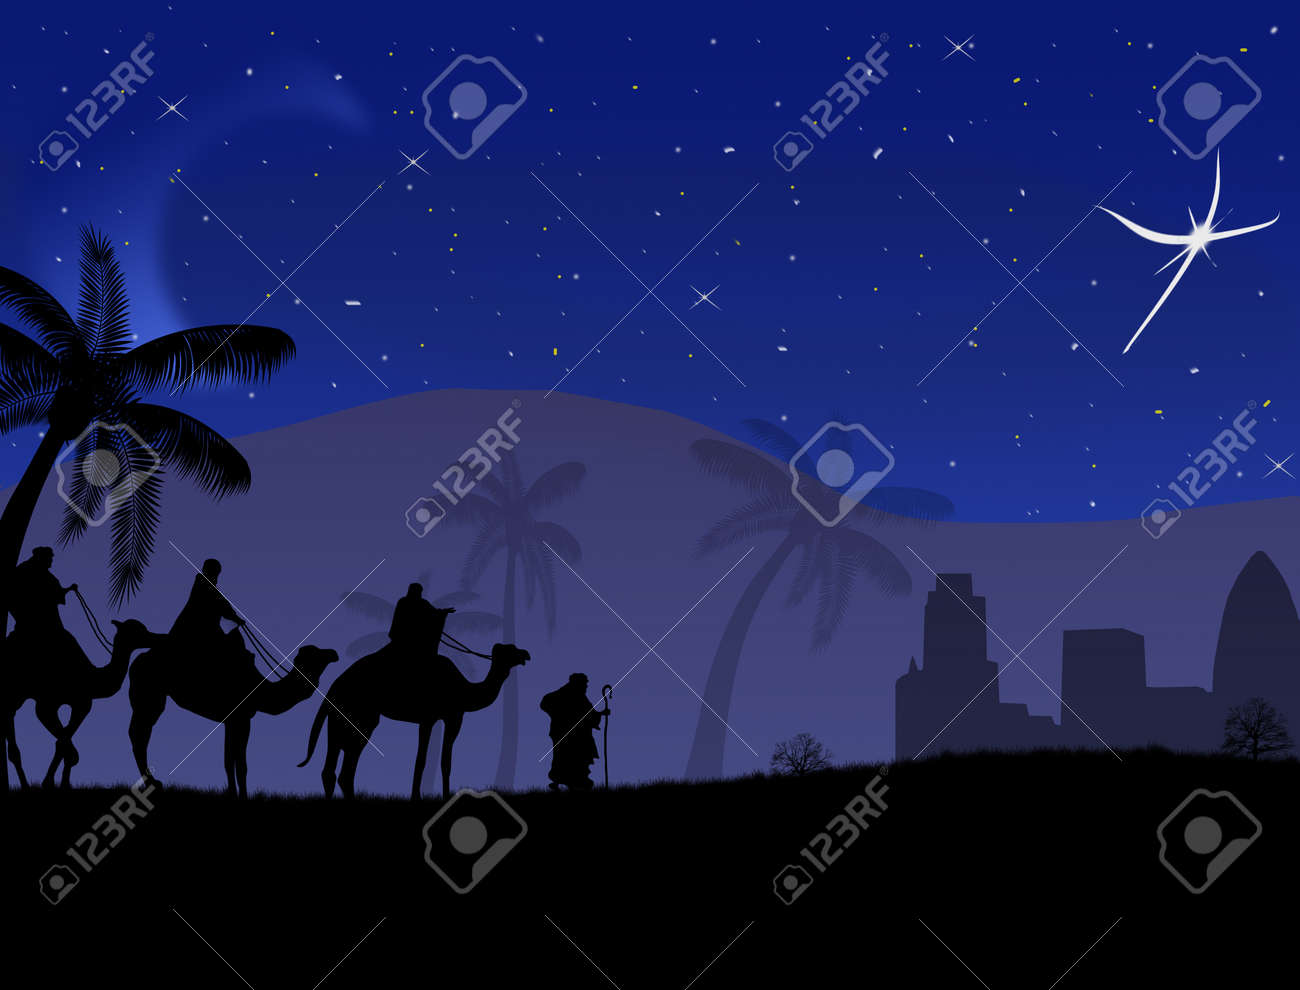 Classic three magic scene and shining star of Bethlehem Stock Vector - 16101666